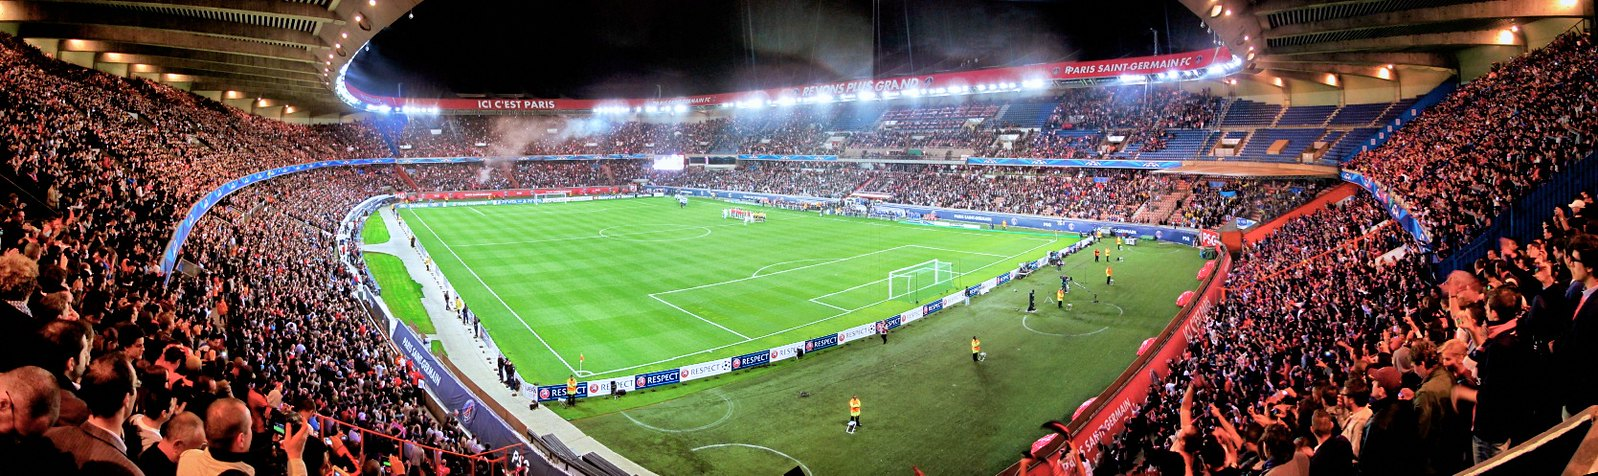 Parc des princes flickr photo sharing for Porte 0 parc des princes